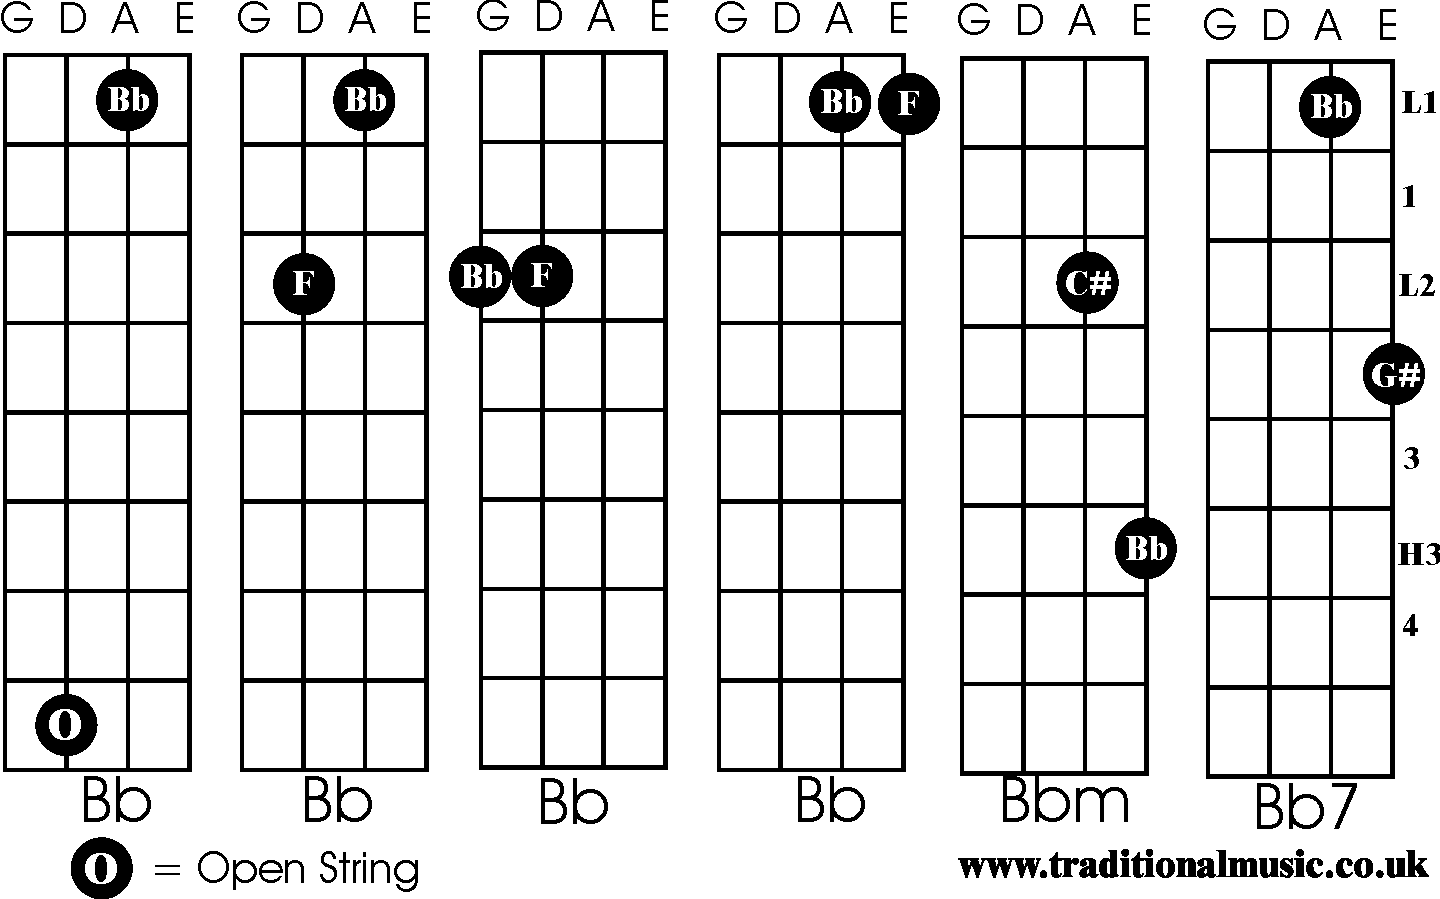 Chords For Fiddle Bb Bbm Bb7